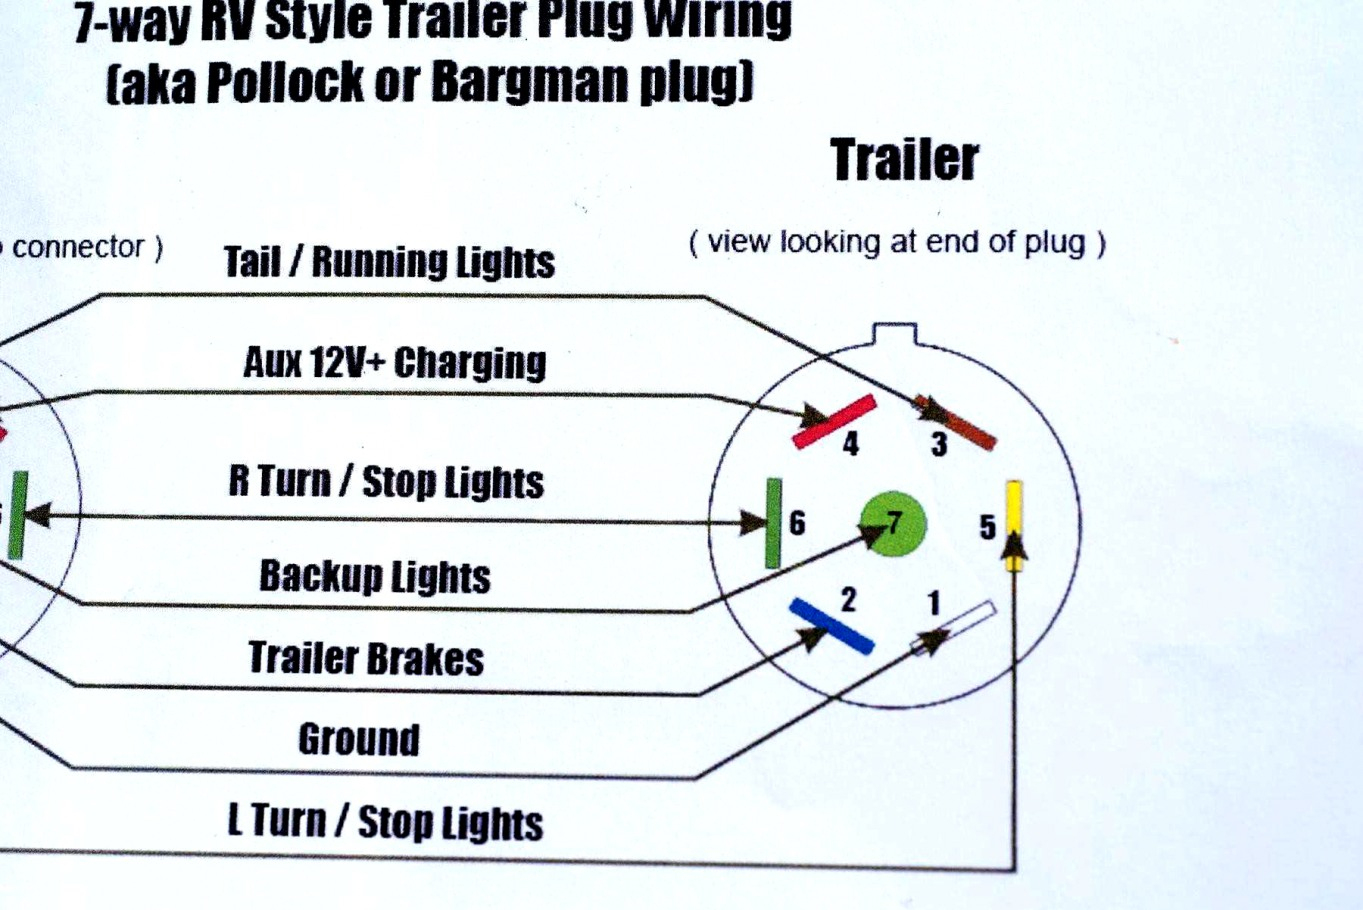 7 Way Semi Trailer Plug Wiring Diagram - Trusted Wiring Diagram - 7 Way Semi Trailer Wiring Diagram